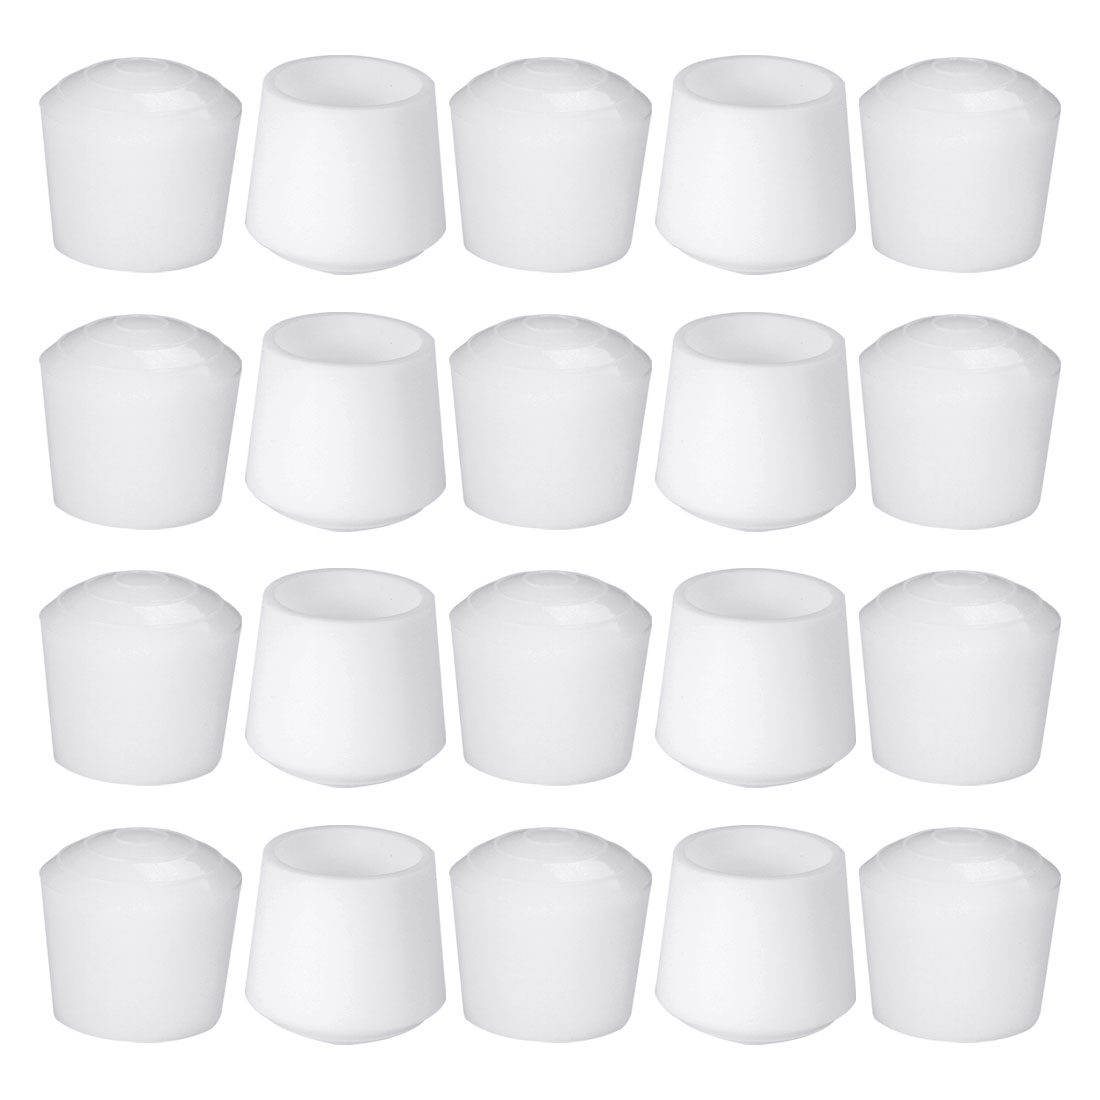 "Rubber Leg Cap Cups Feet Cover 32mm 1 1/4"" Inner Dia 20pcs for Furniture Desk"